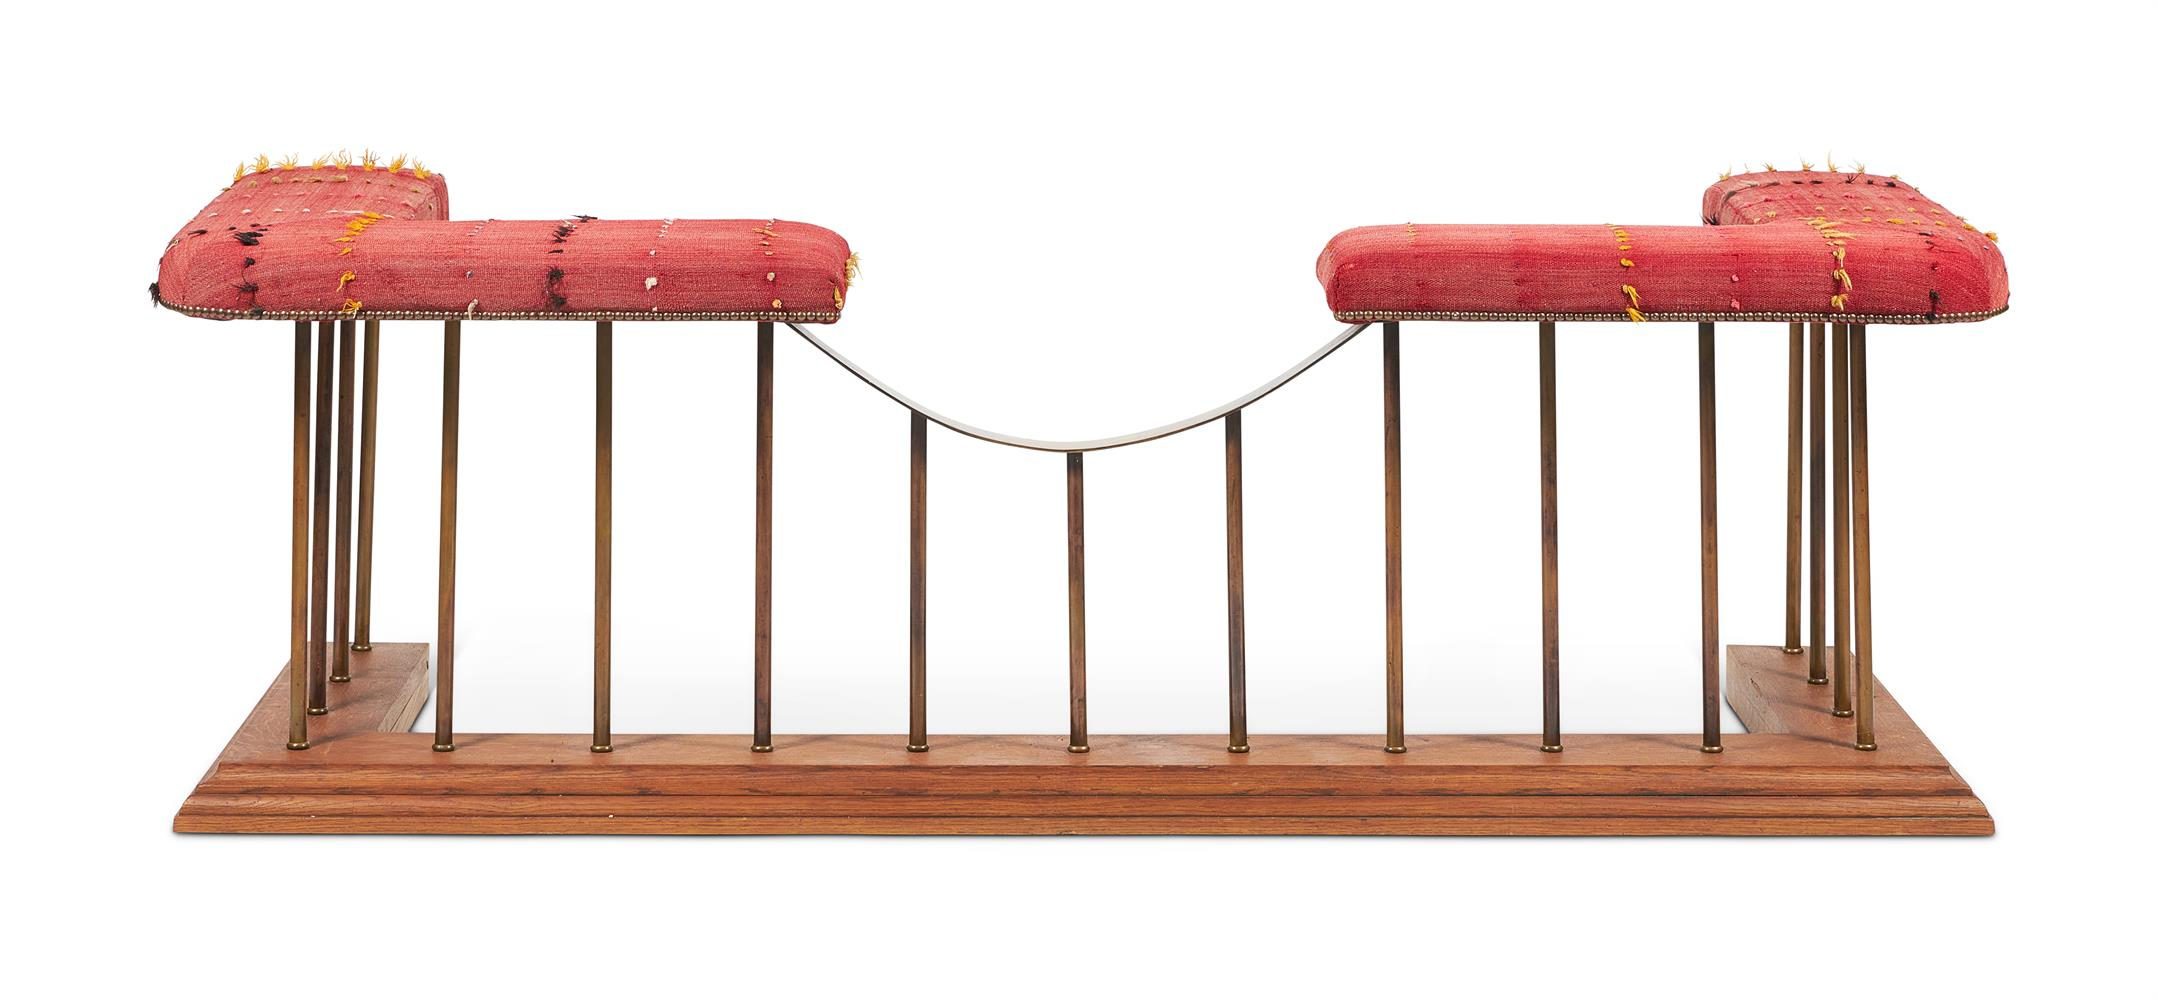 A BRASS OAK AND UPHOLSTERED CLUB FENDER, 20TH CENTURY